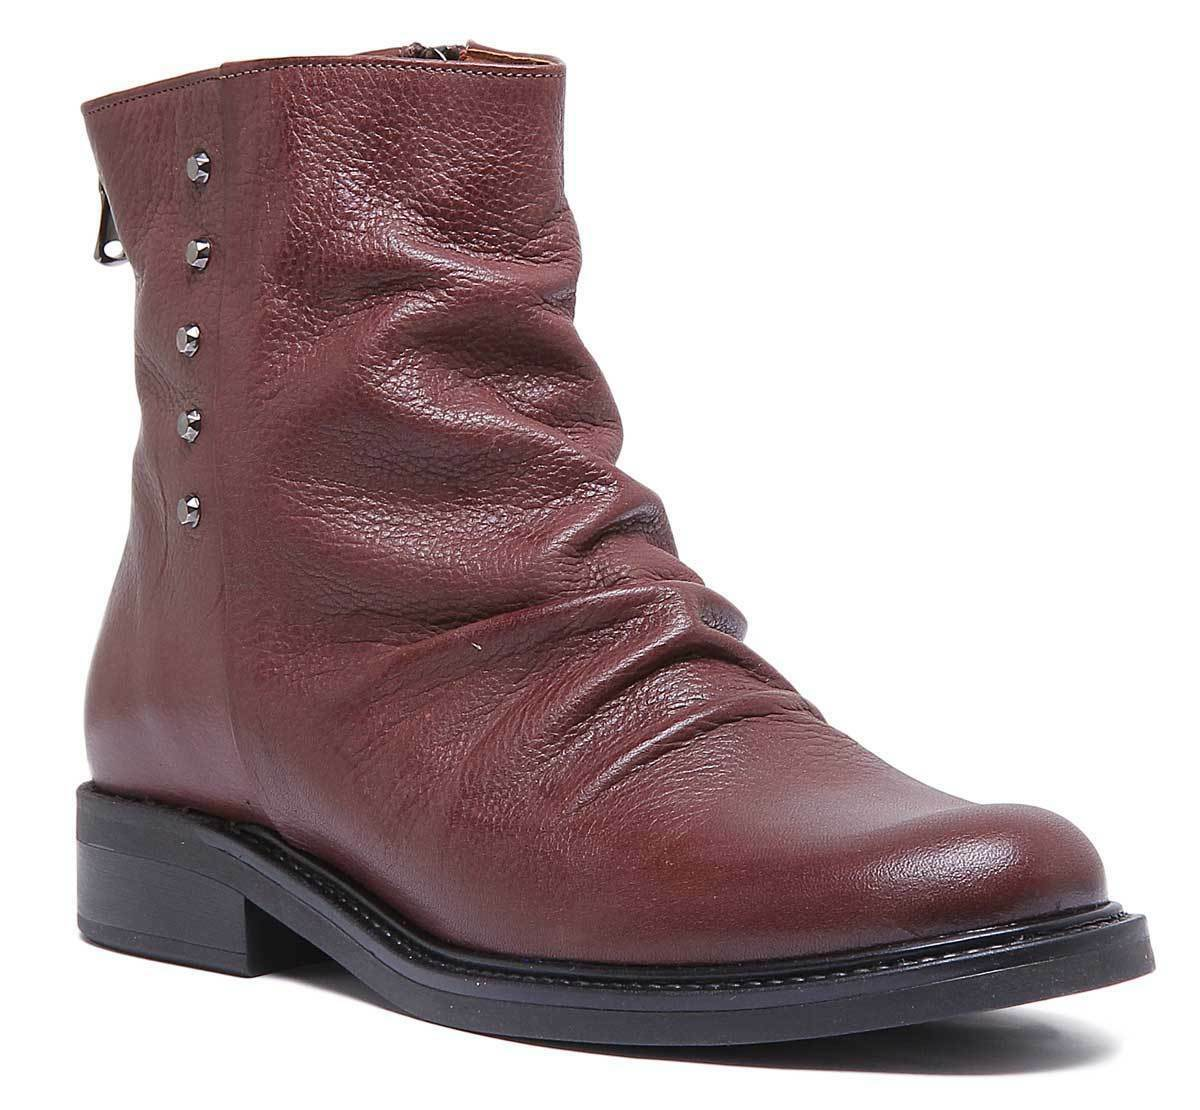 Justin Reece Womens Flat Casual Leather Slough Boot Brown Size UK 3 - 8